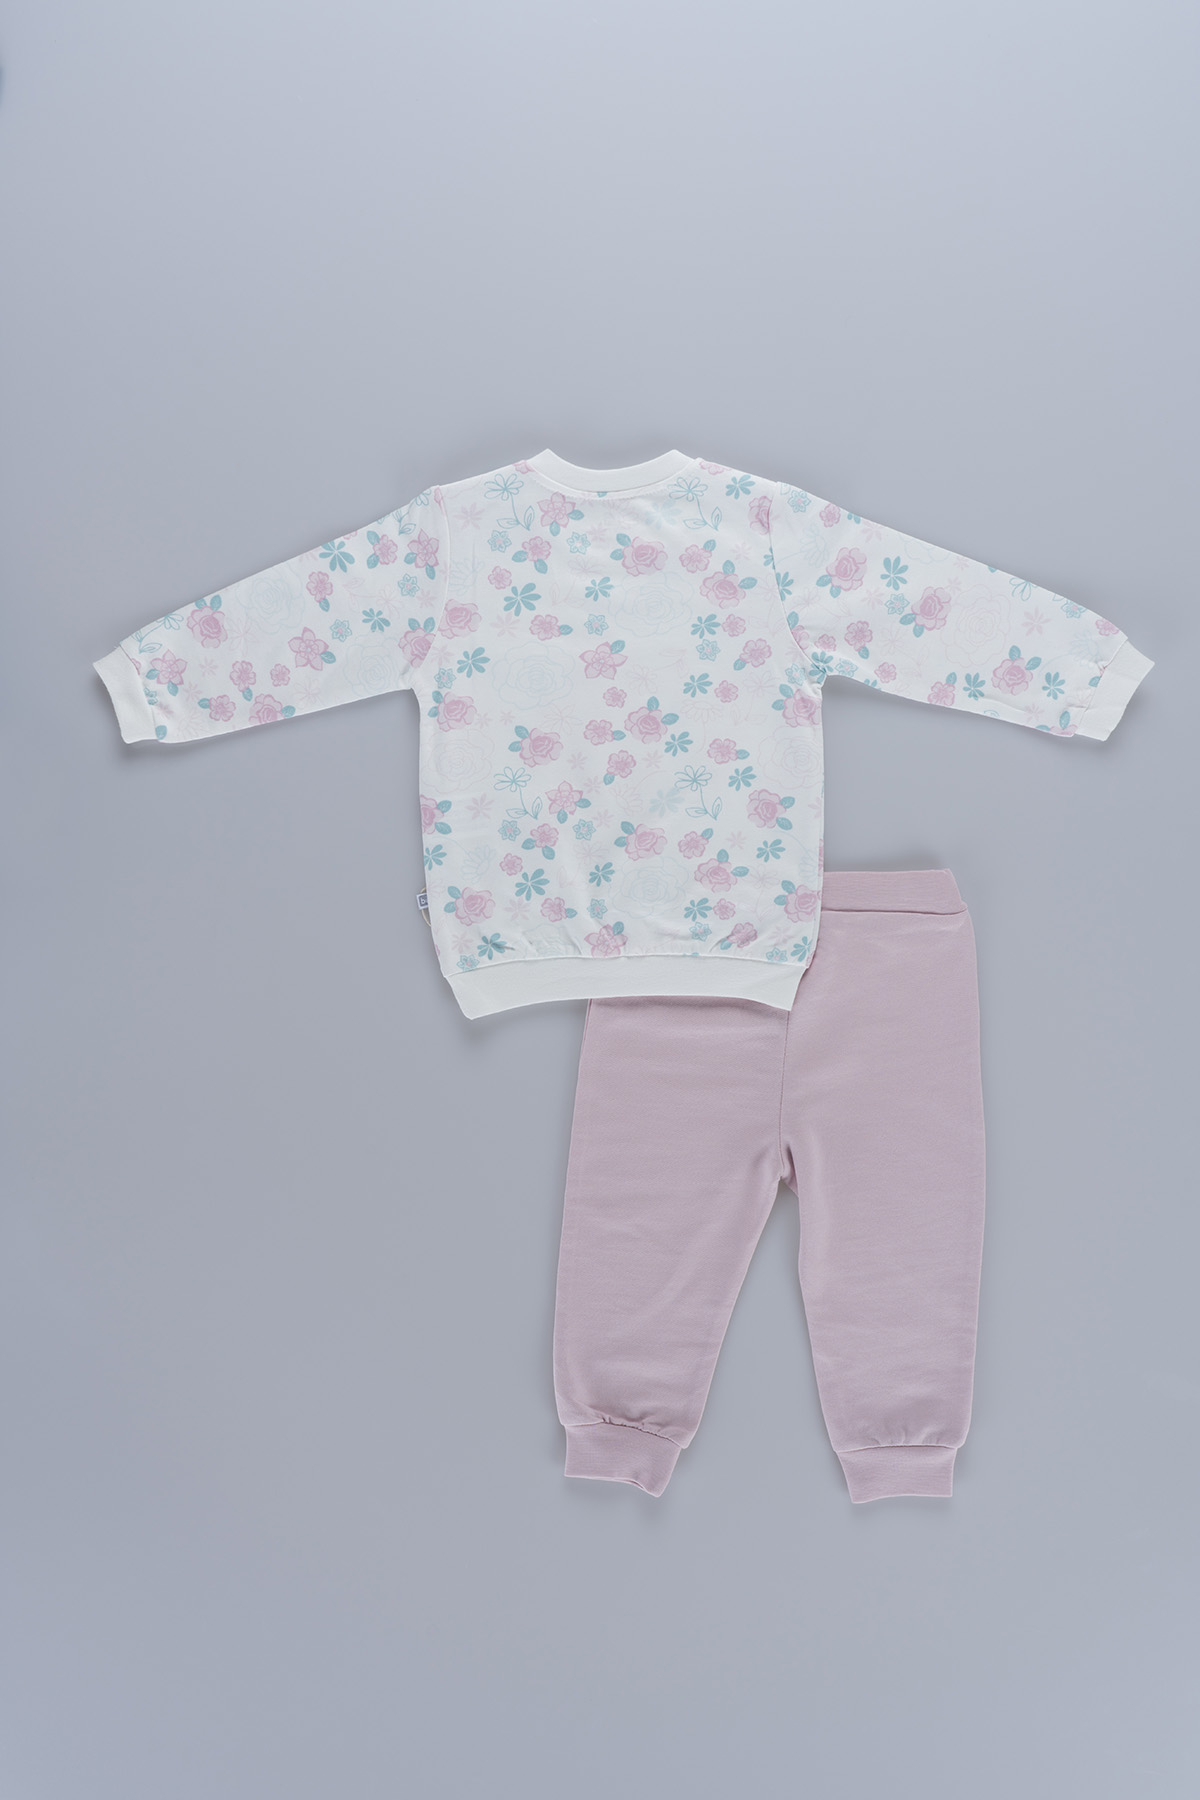 Flower Patterned Baby Girl 2 Pieces Set 59317 Pink